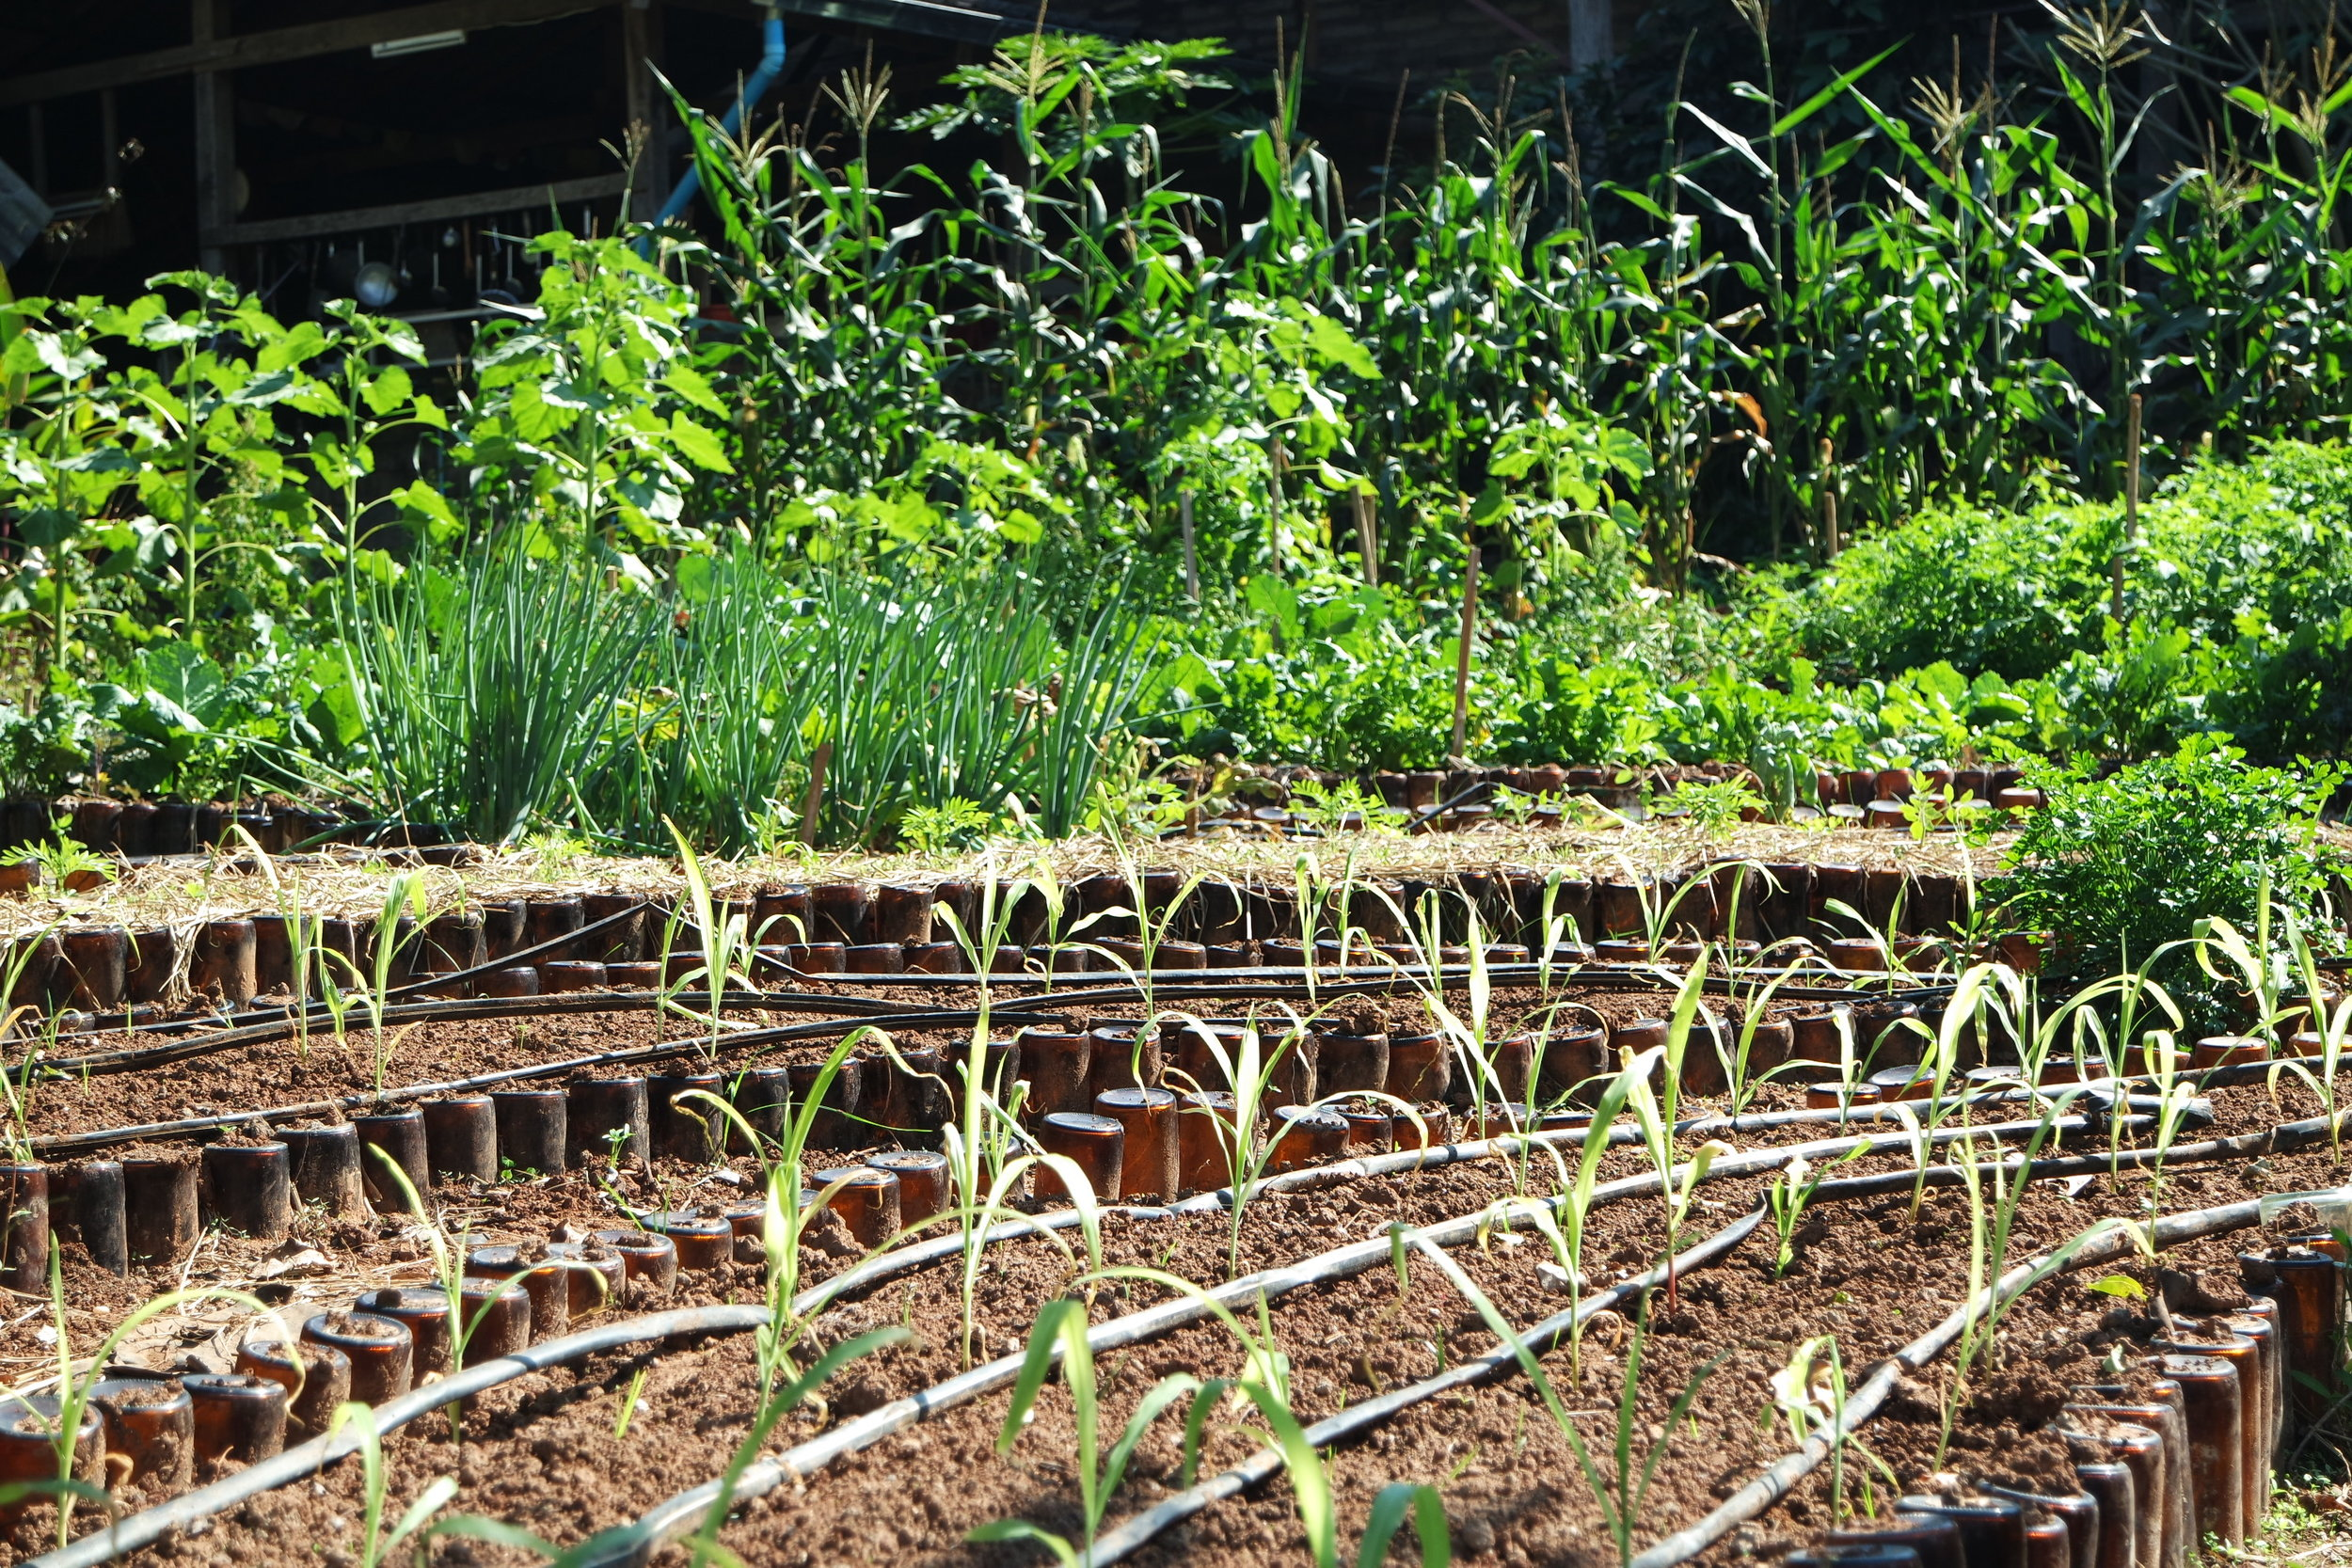 Double dig gardens are often used for intensive used areas such as kitchen gardens.